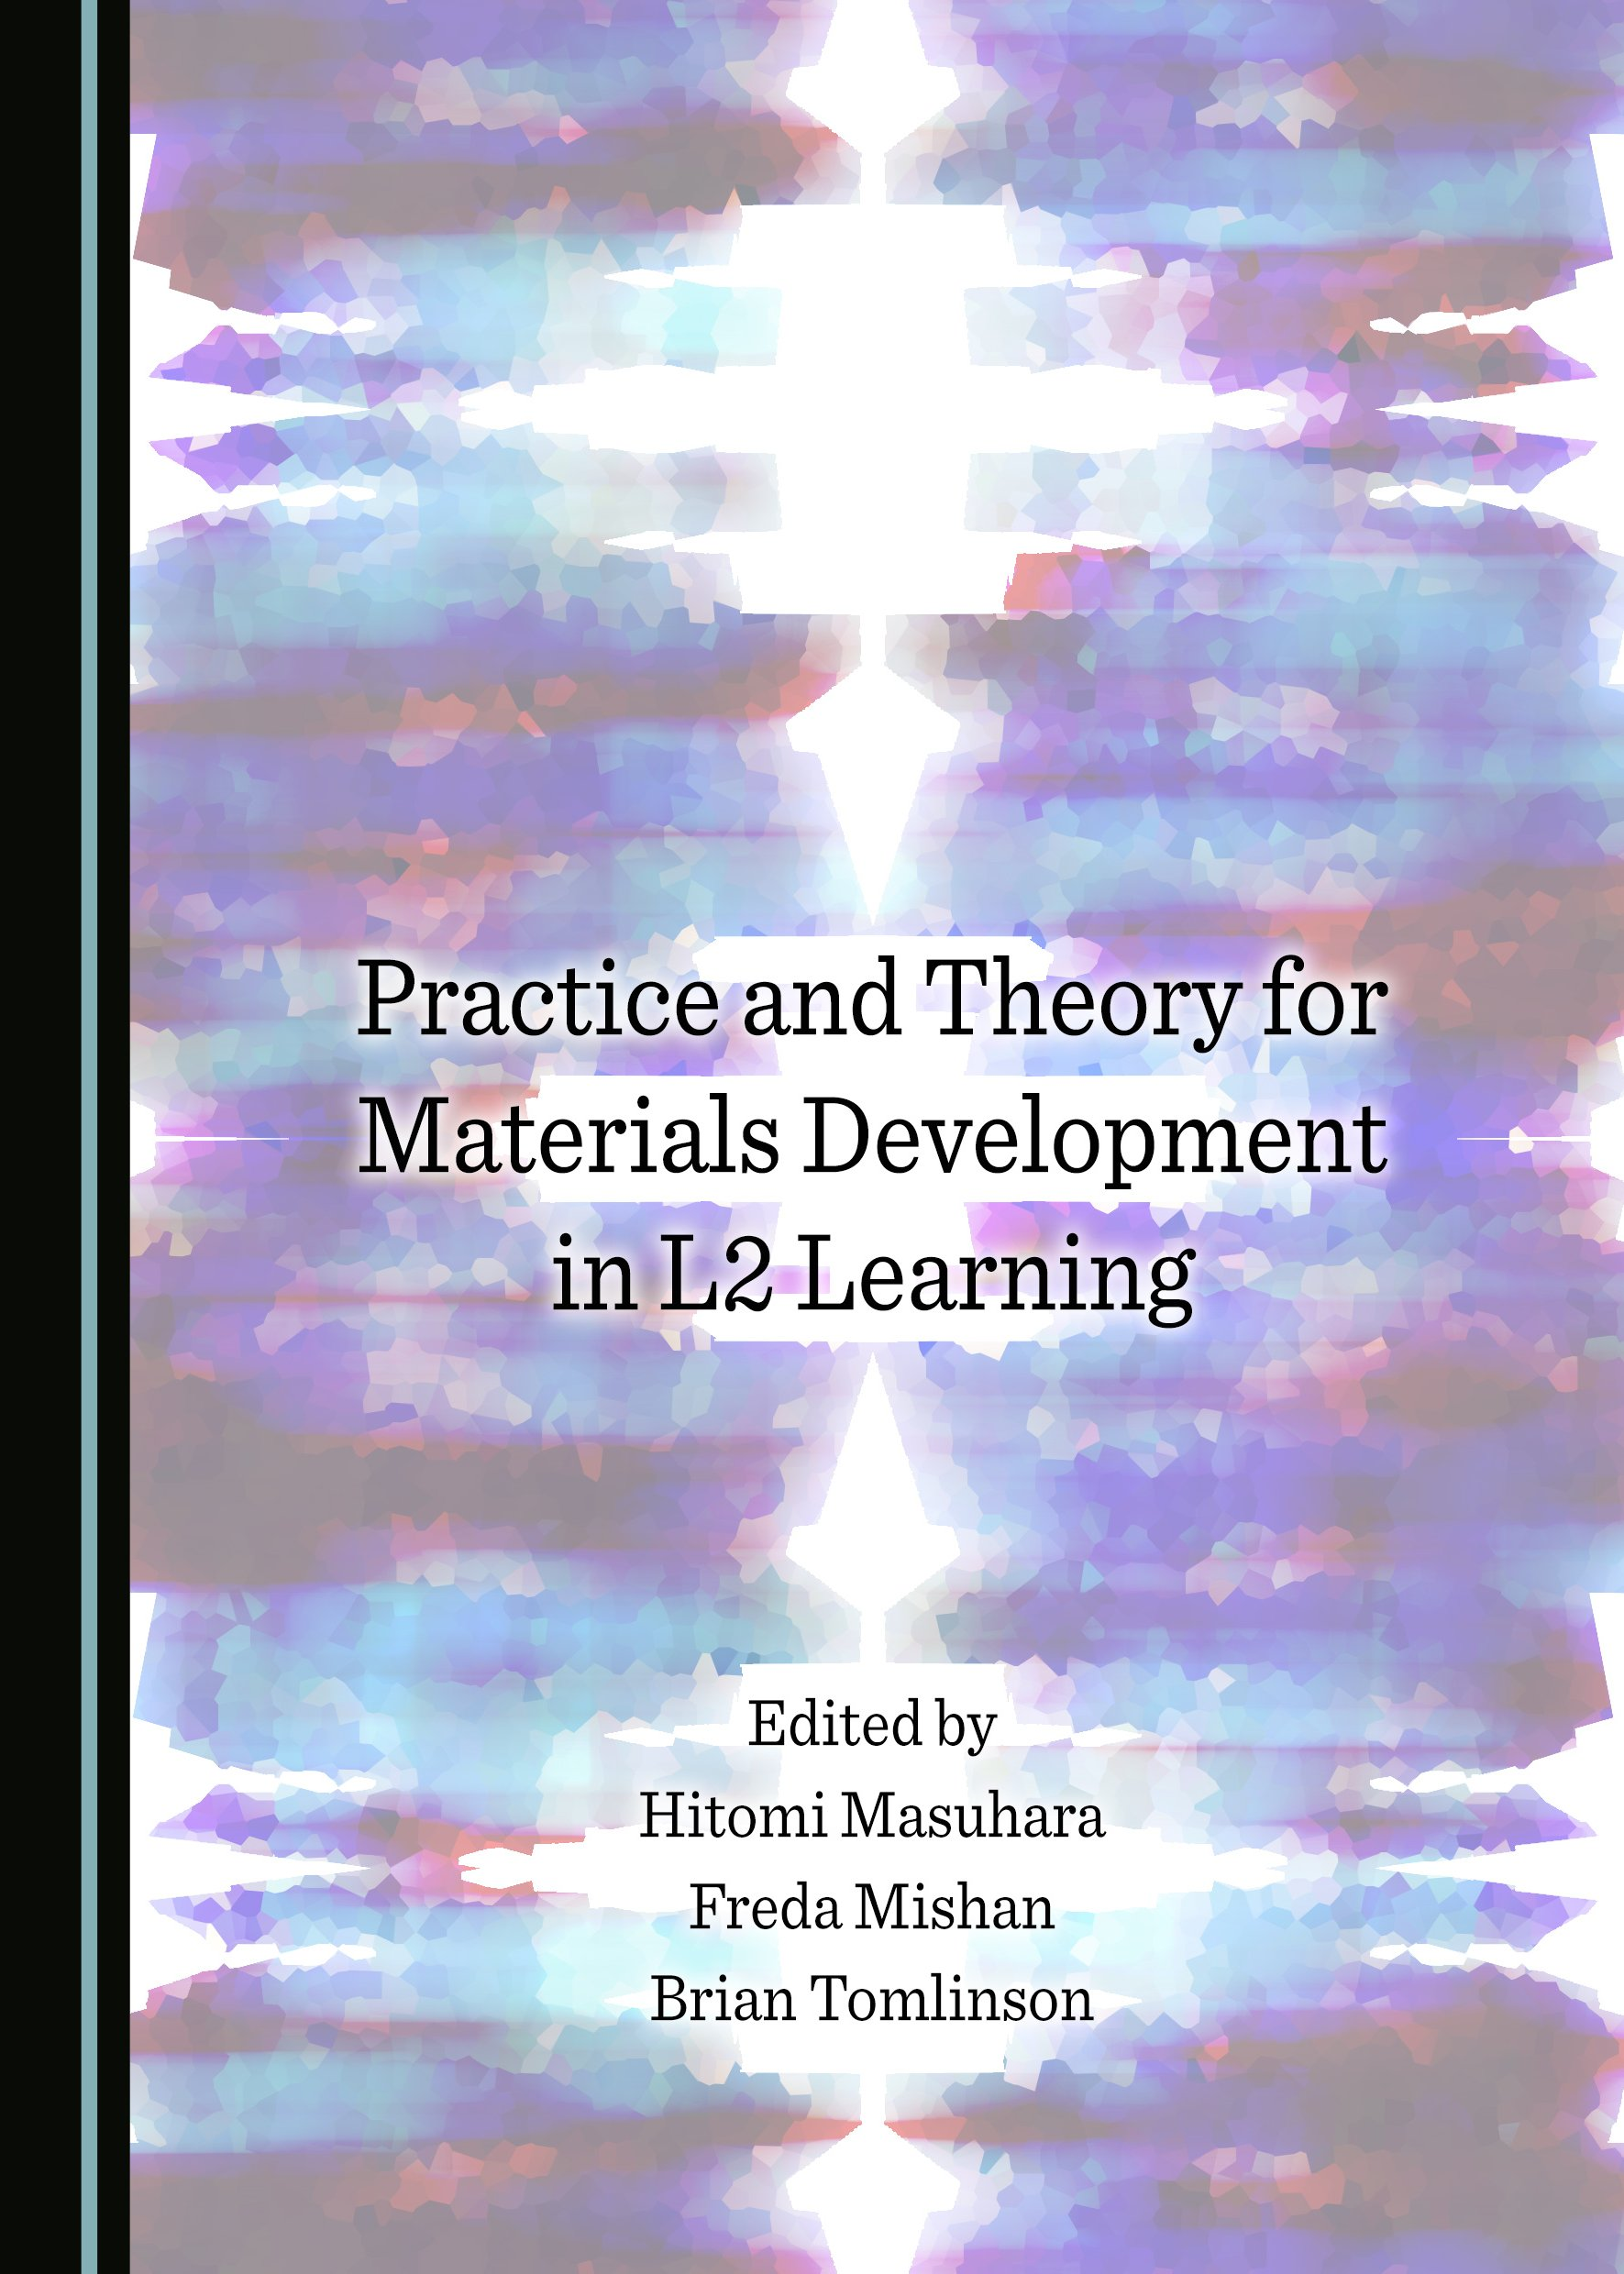 Practice and Theory for Materials Development in L2 Learning